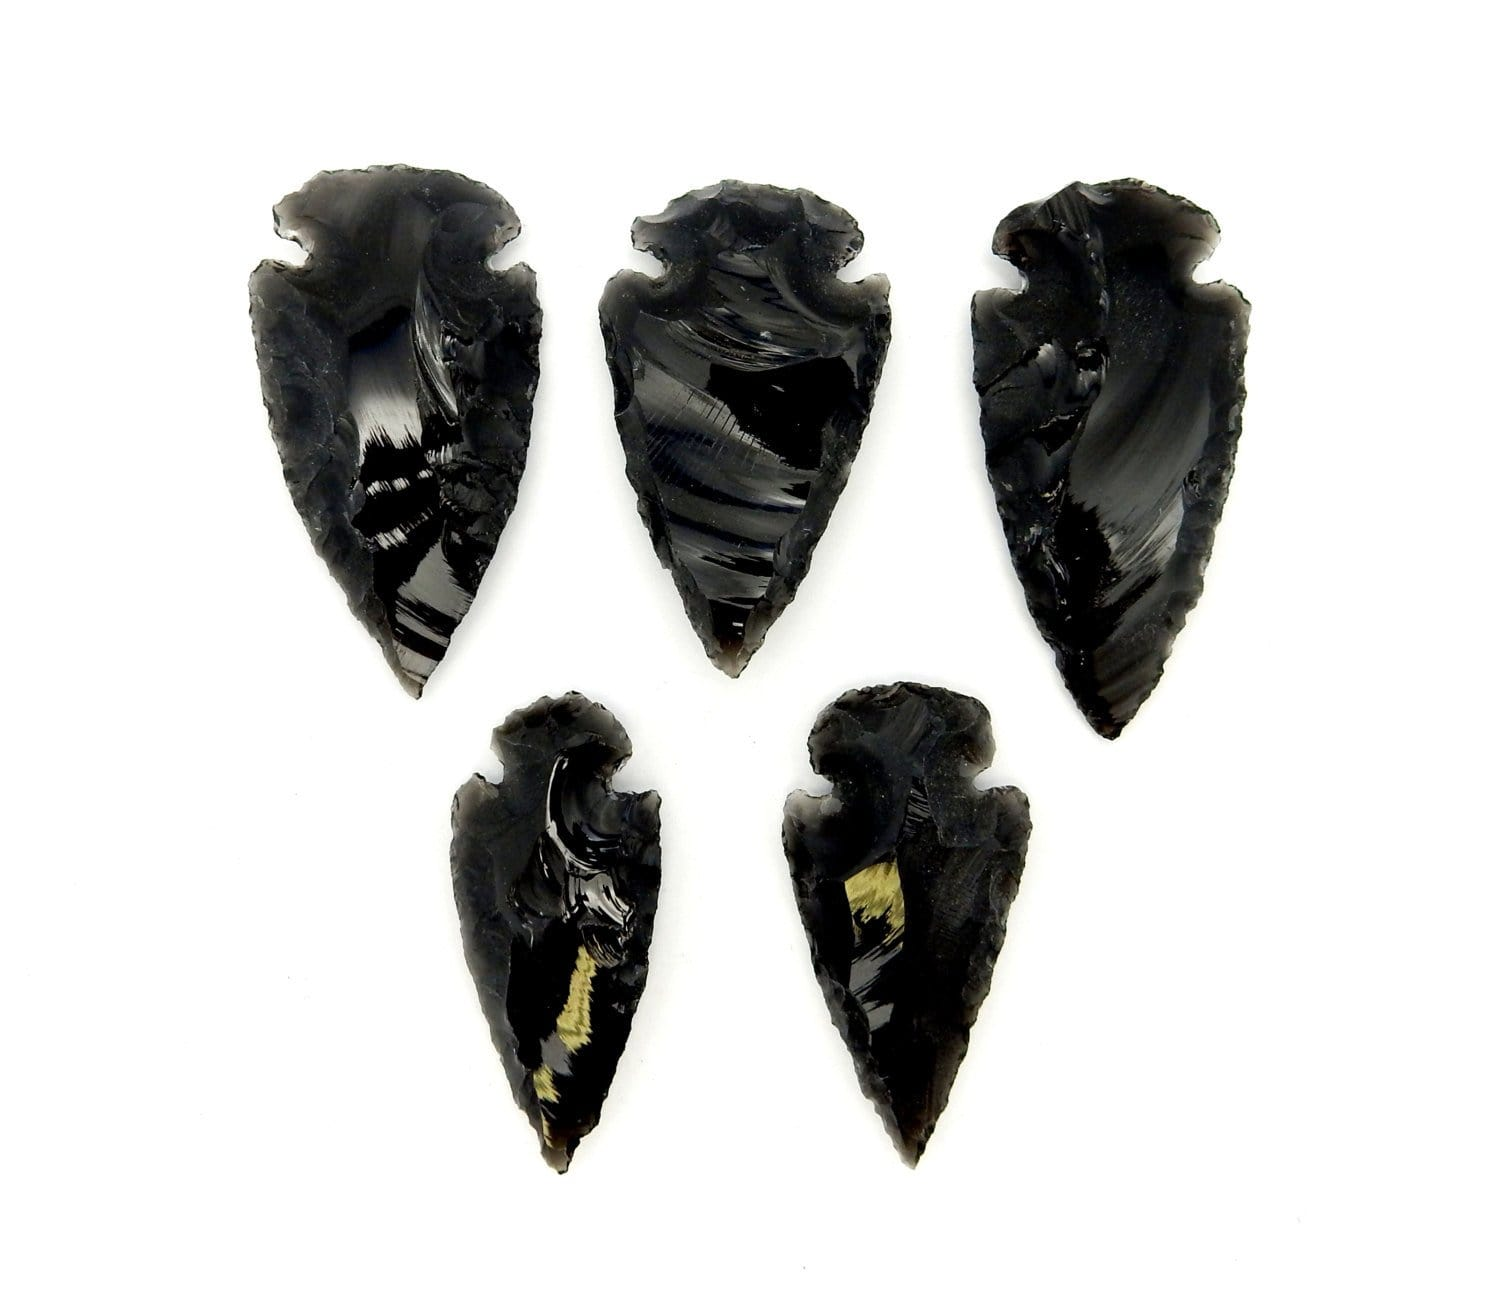 "Arrow Heads - Black Obsidian 2"" Arrowhead Pendants - Black Obisidan Arrow Head Pendant 1, 5, 10, 25, 50 Or 100 Pieces (RK148B4)"